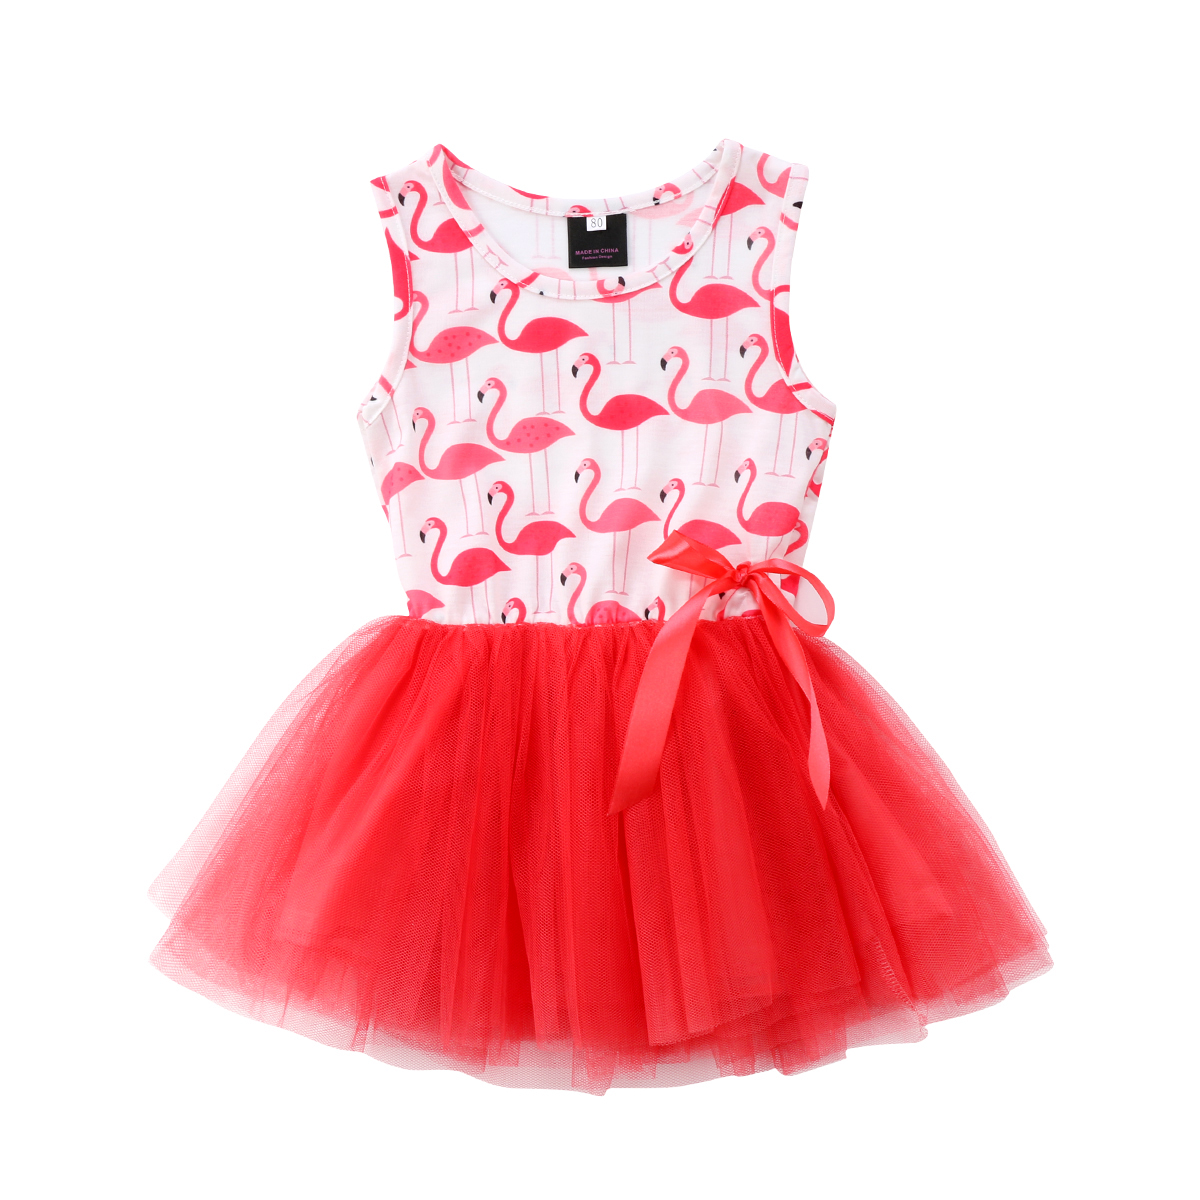 Helen115 Lovely Kids baby girl clothes Princess Flamingo Sleeveless Dresses Outfits 0-5Years